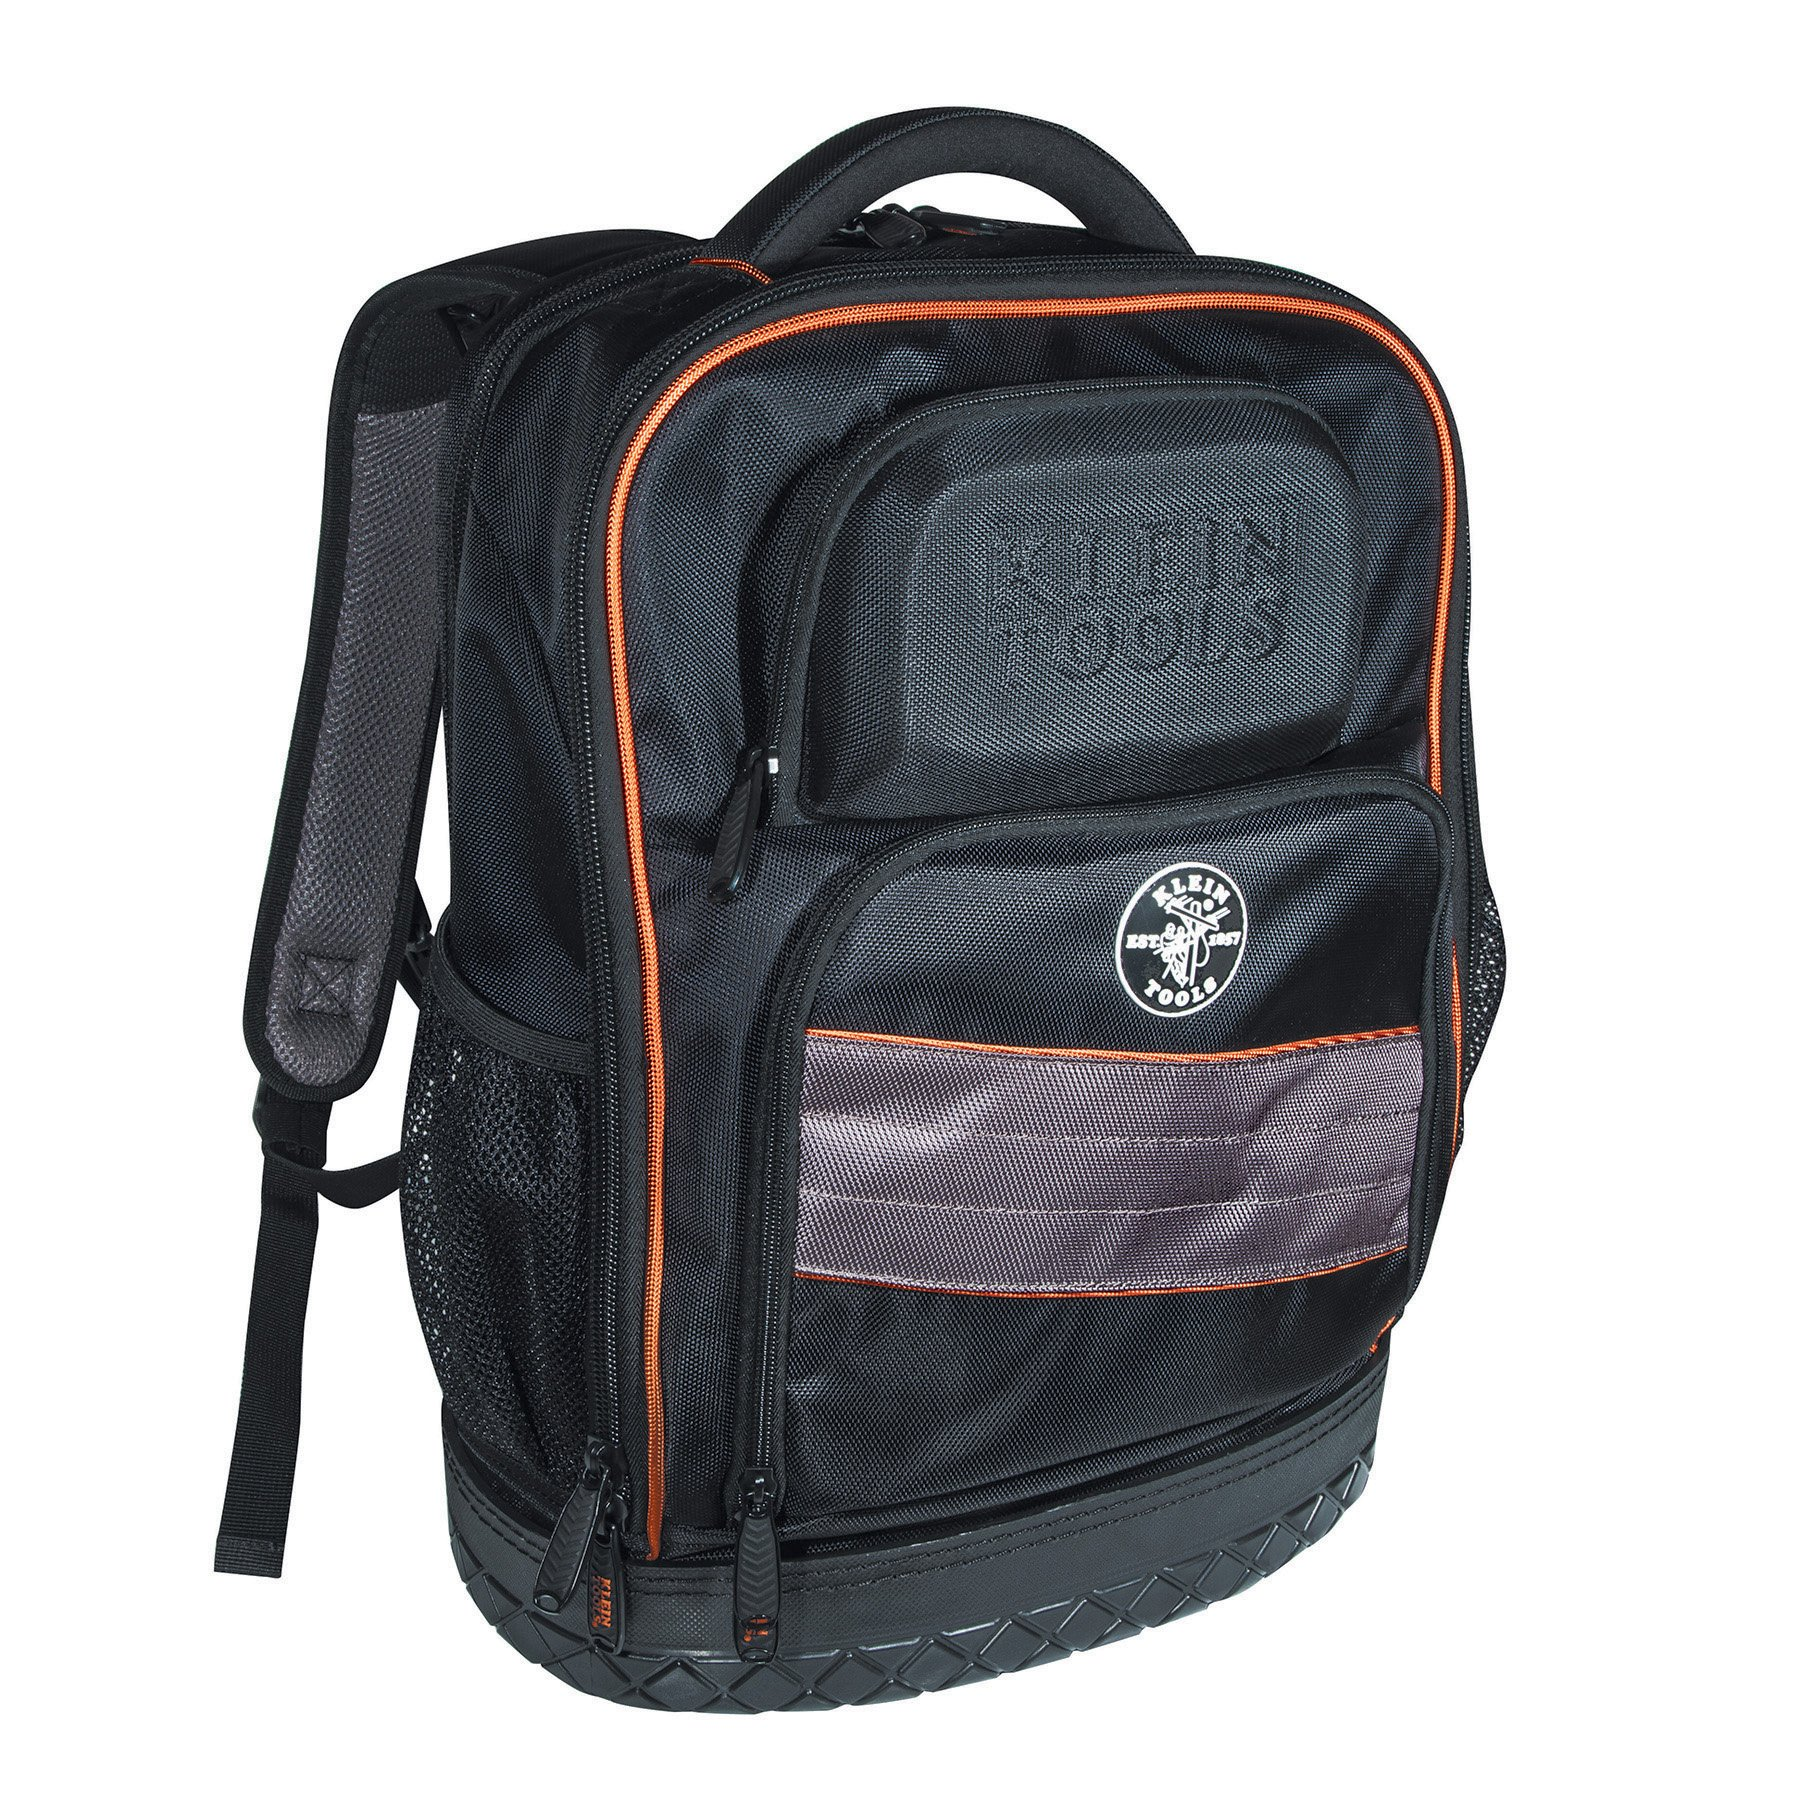 Klein Tools 55439BPTB Tradesman Pro Tech Backpack 2.0 by Klein Tools